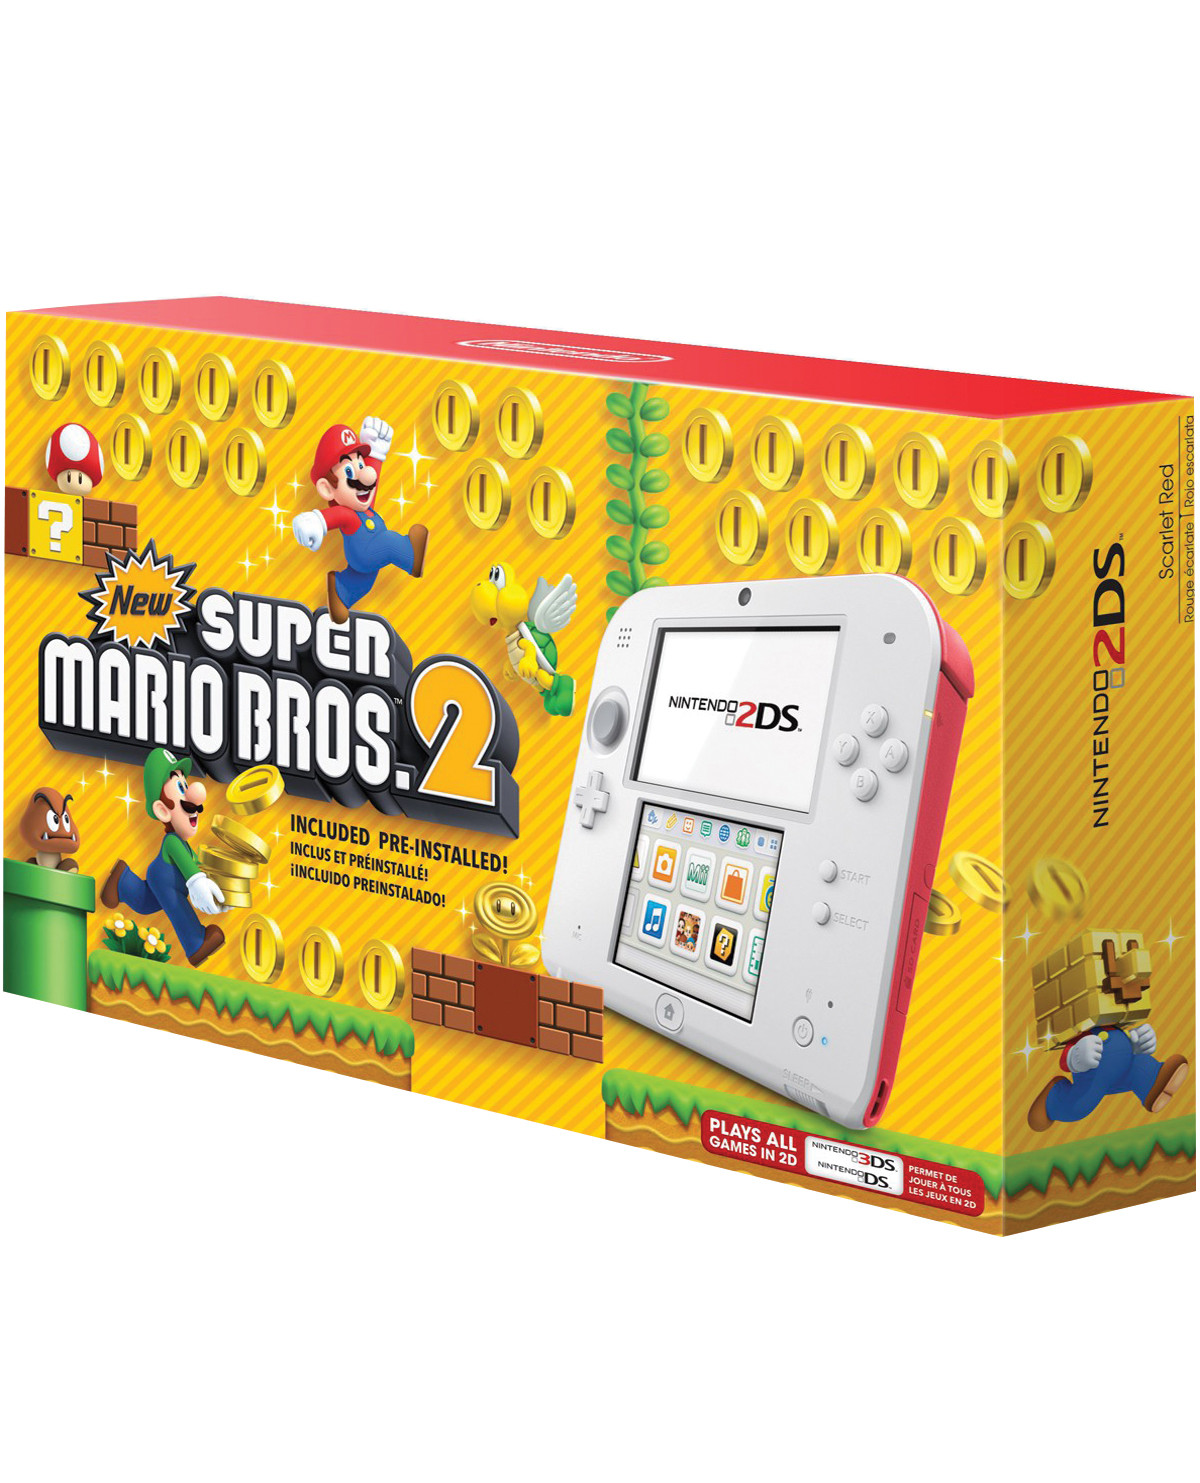 how to download new super mario bros for 3ds